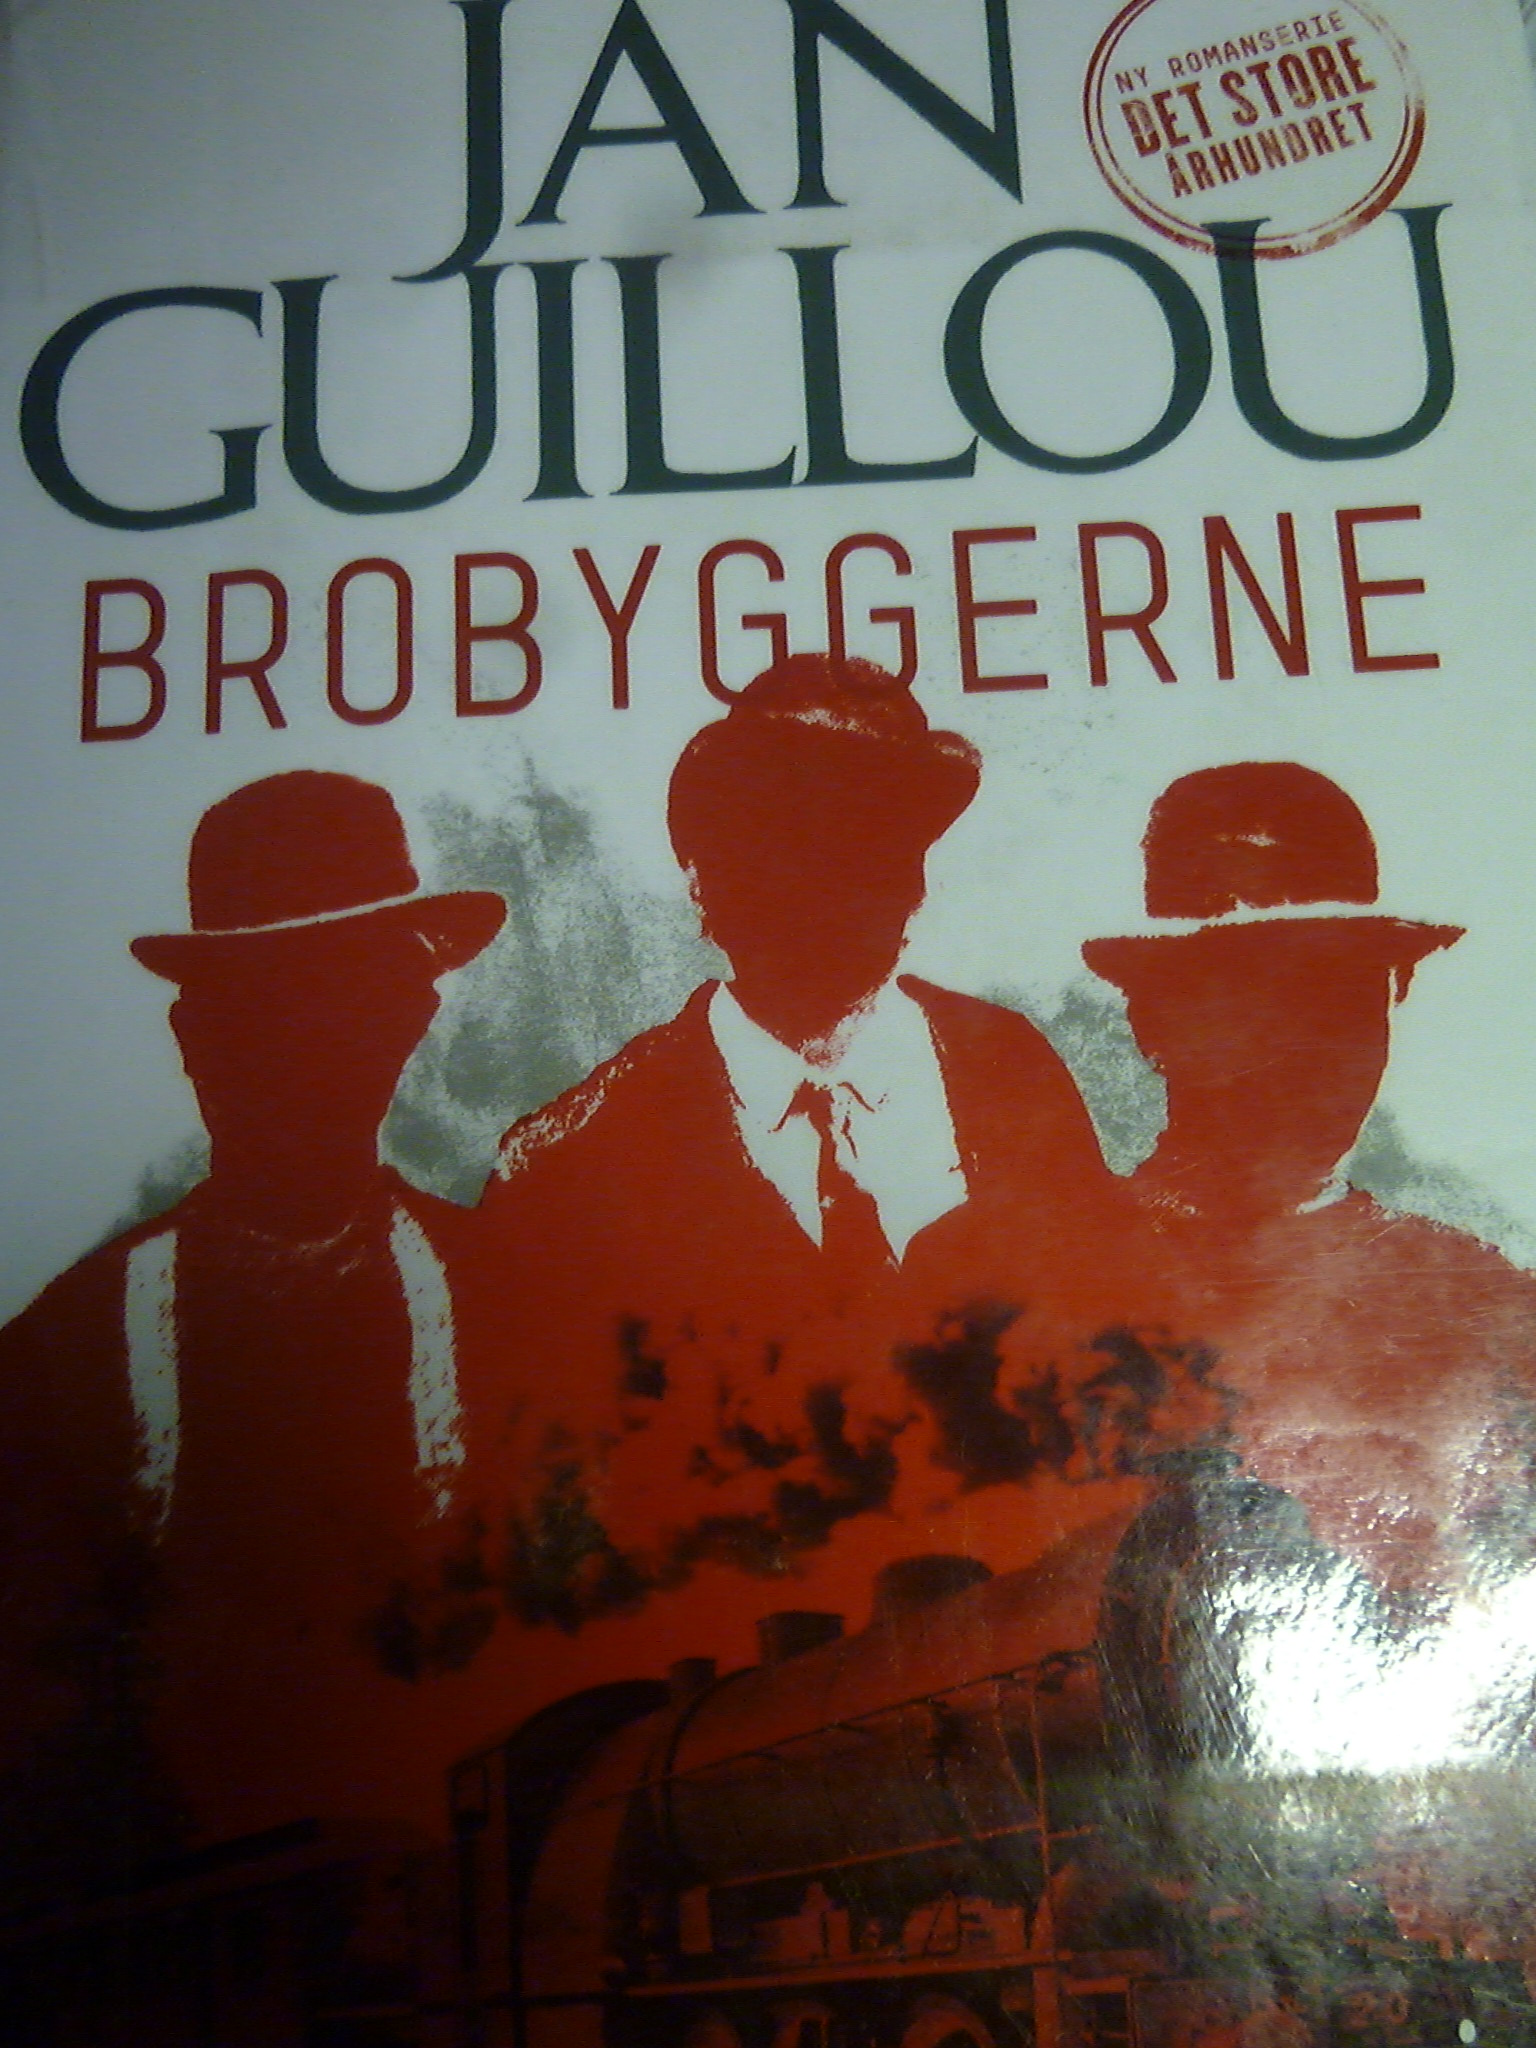 jan guillou brobyggerne